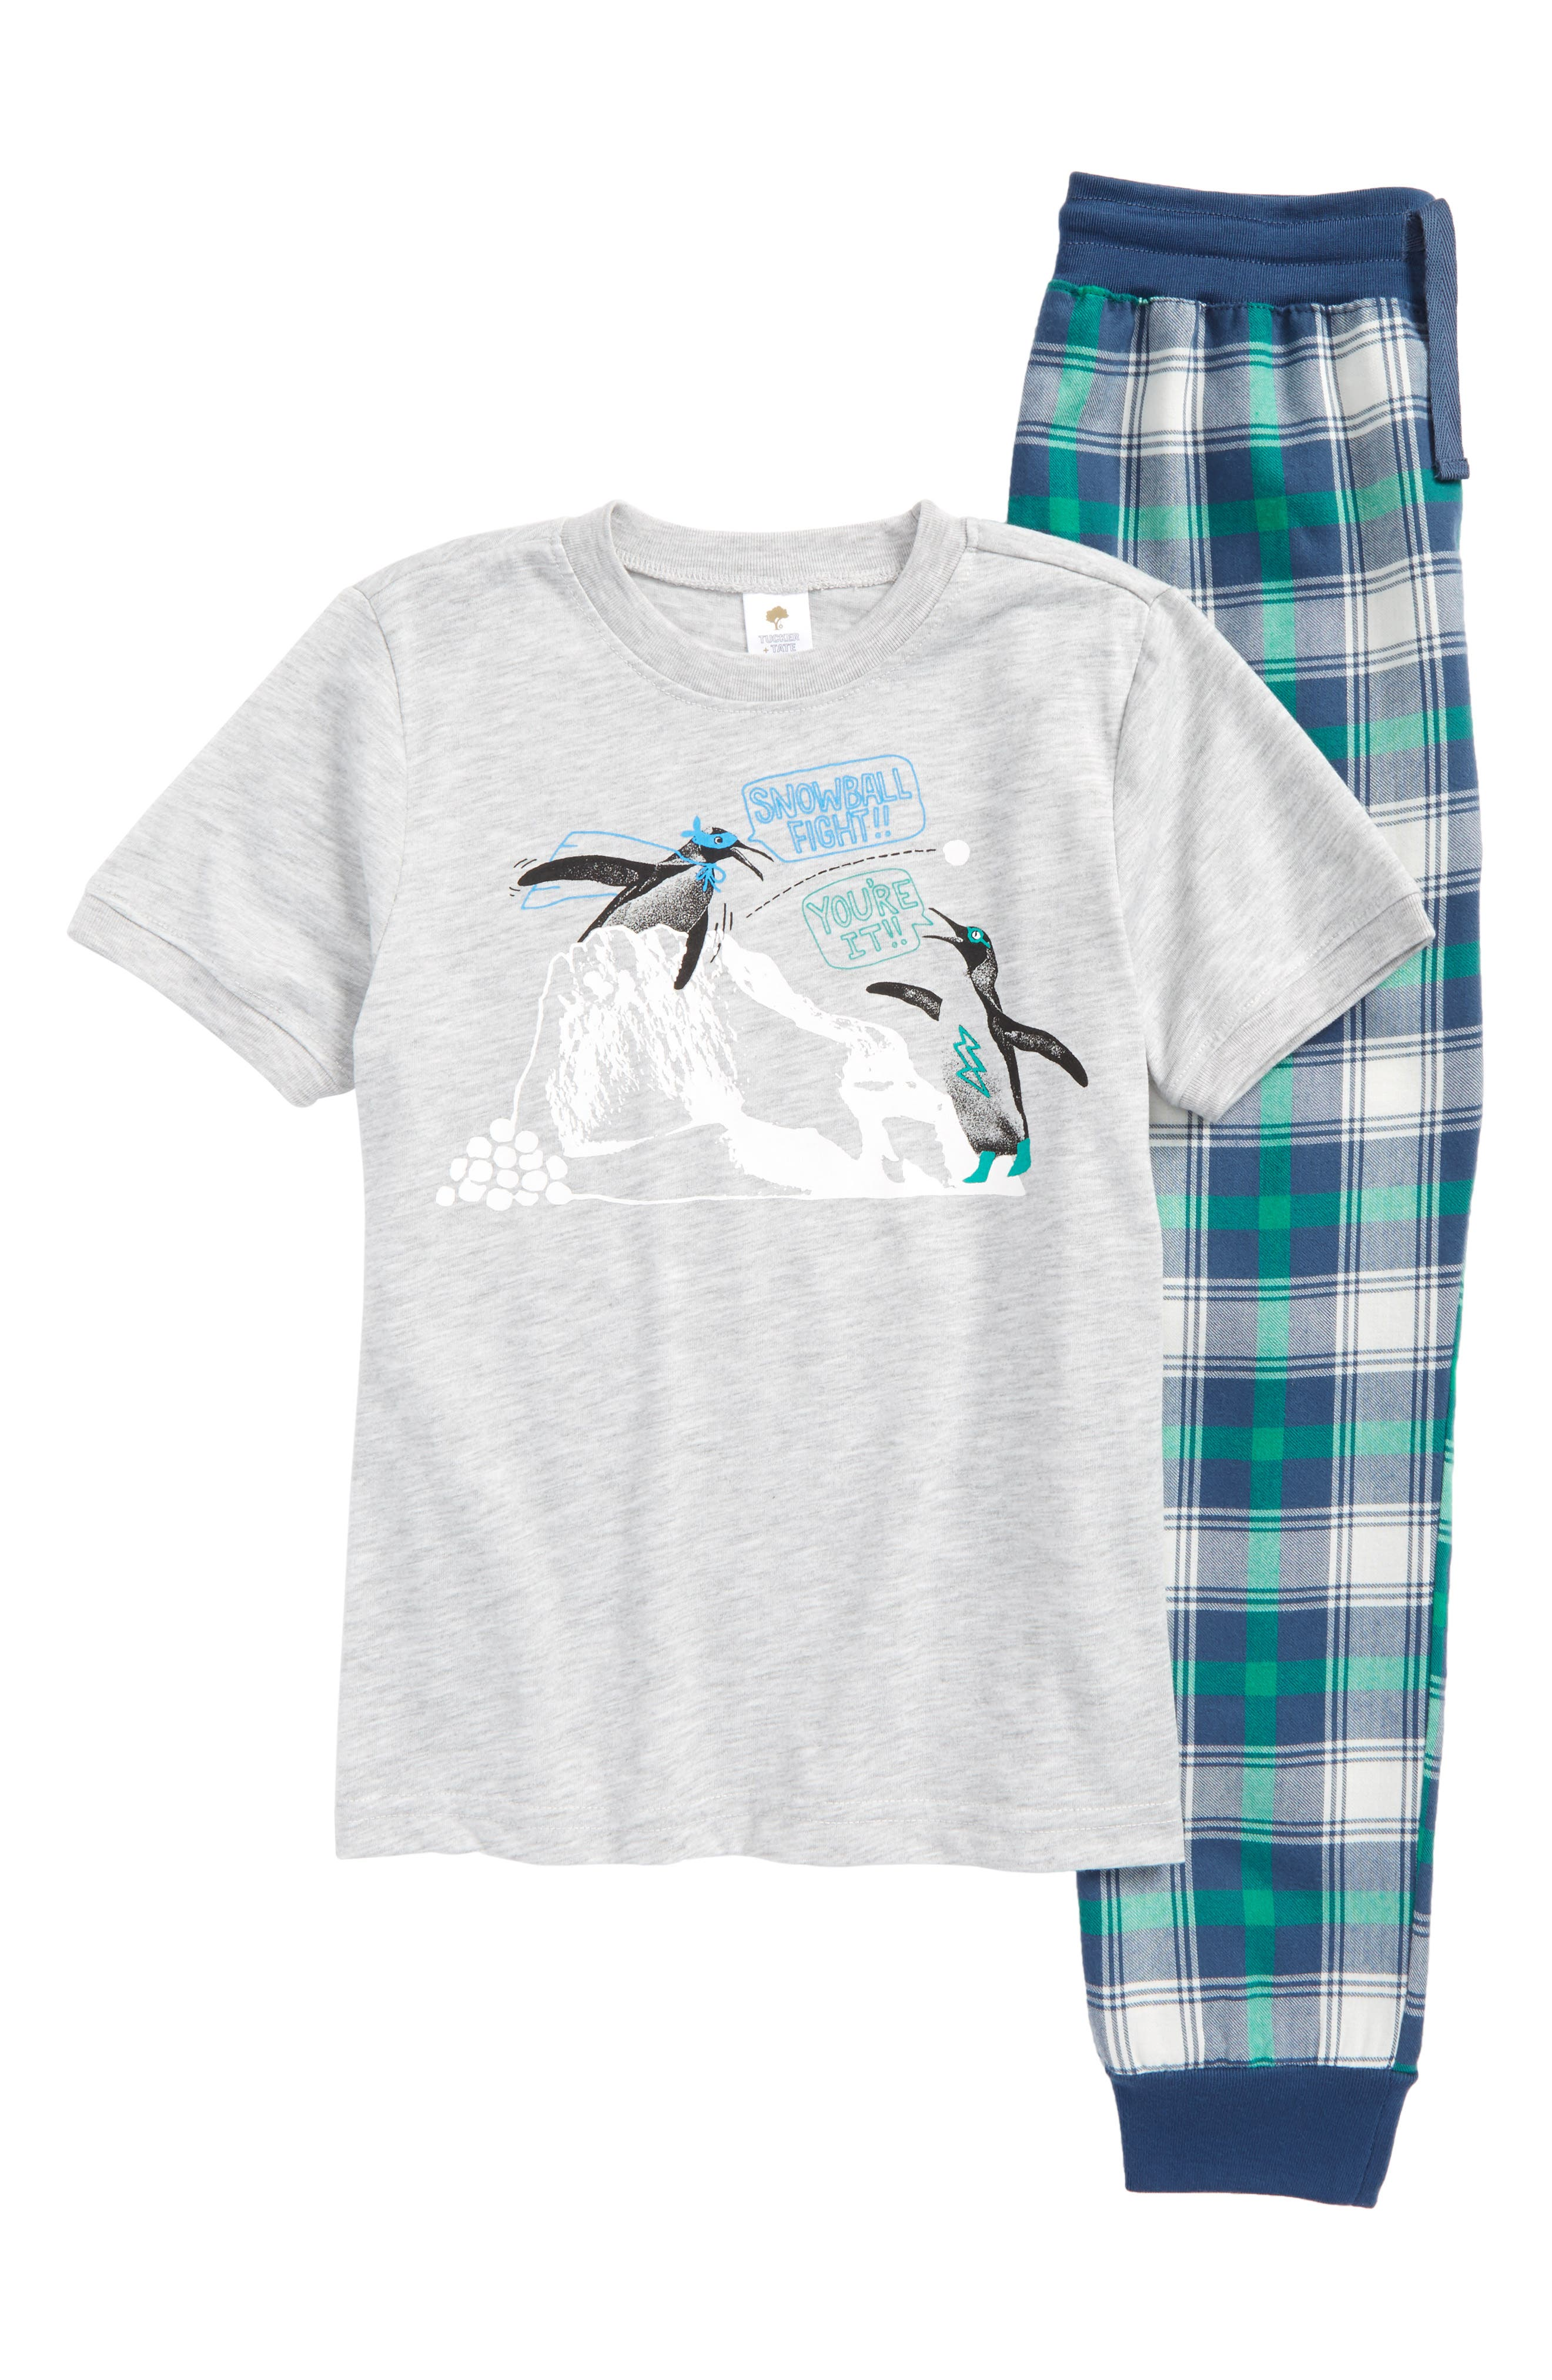 Alternate Image 1 Selected - Tucker + Tate Graphic Two-Piece Pajamas Set (Toddler Boys, Little Boys & Big Boys)